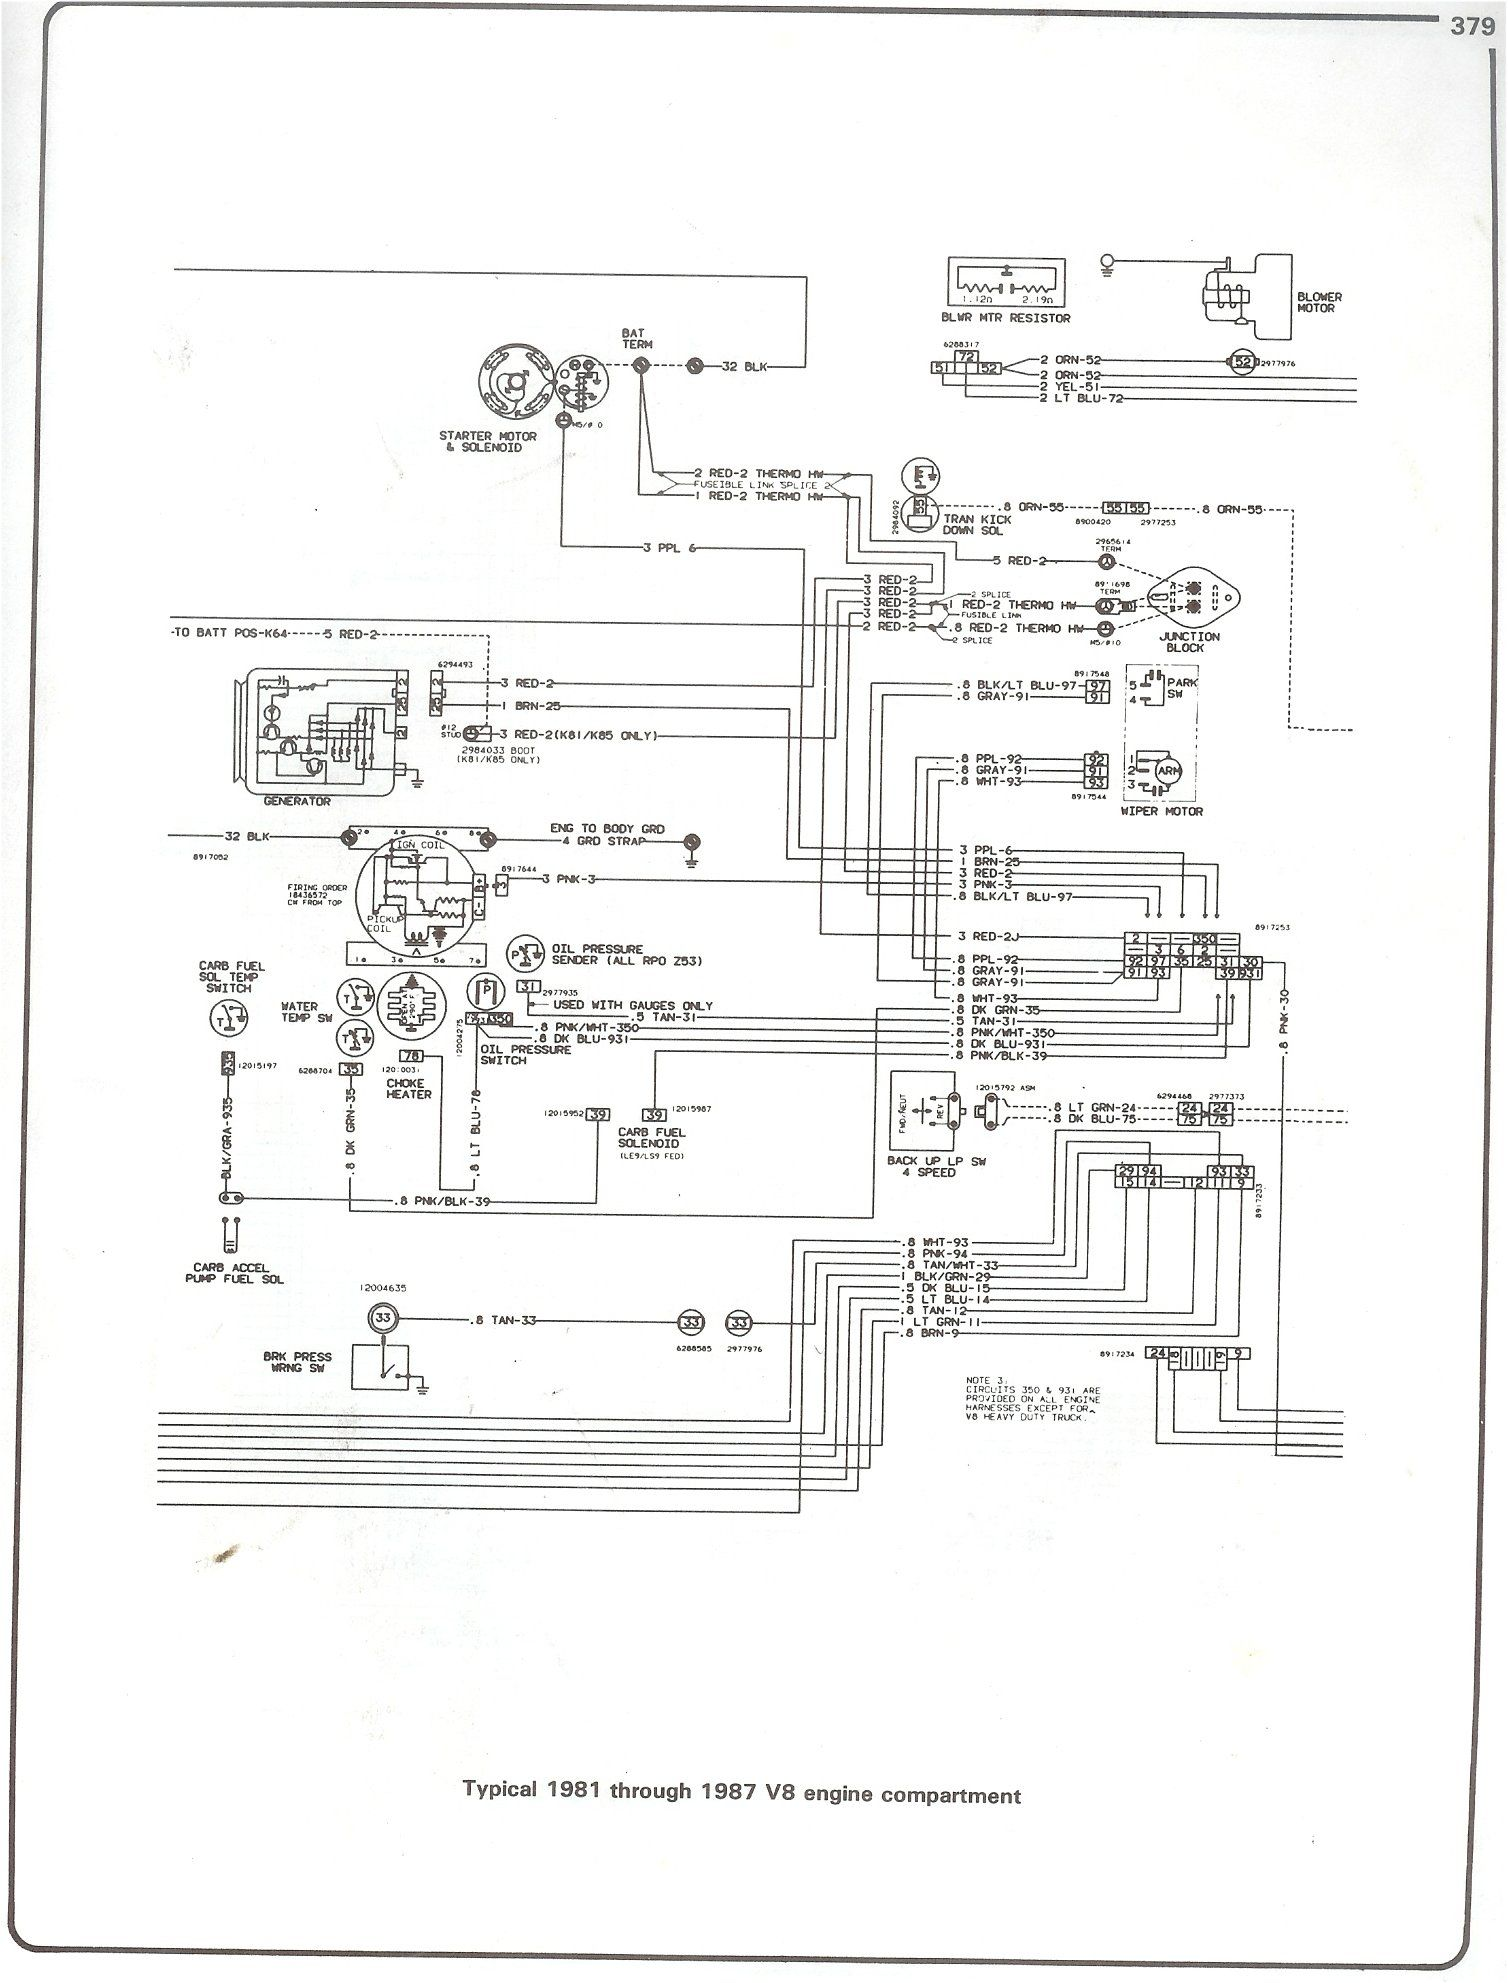 Pin By Malcolm Cail On Projects To Try Pinterest Trucks 73 Vw Alternator Wiring 85 Chevy Truck Diagram Http 87chevytrucks